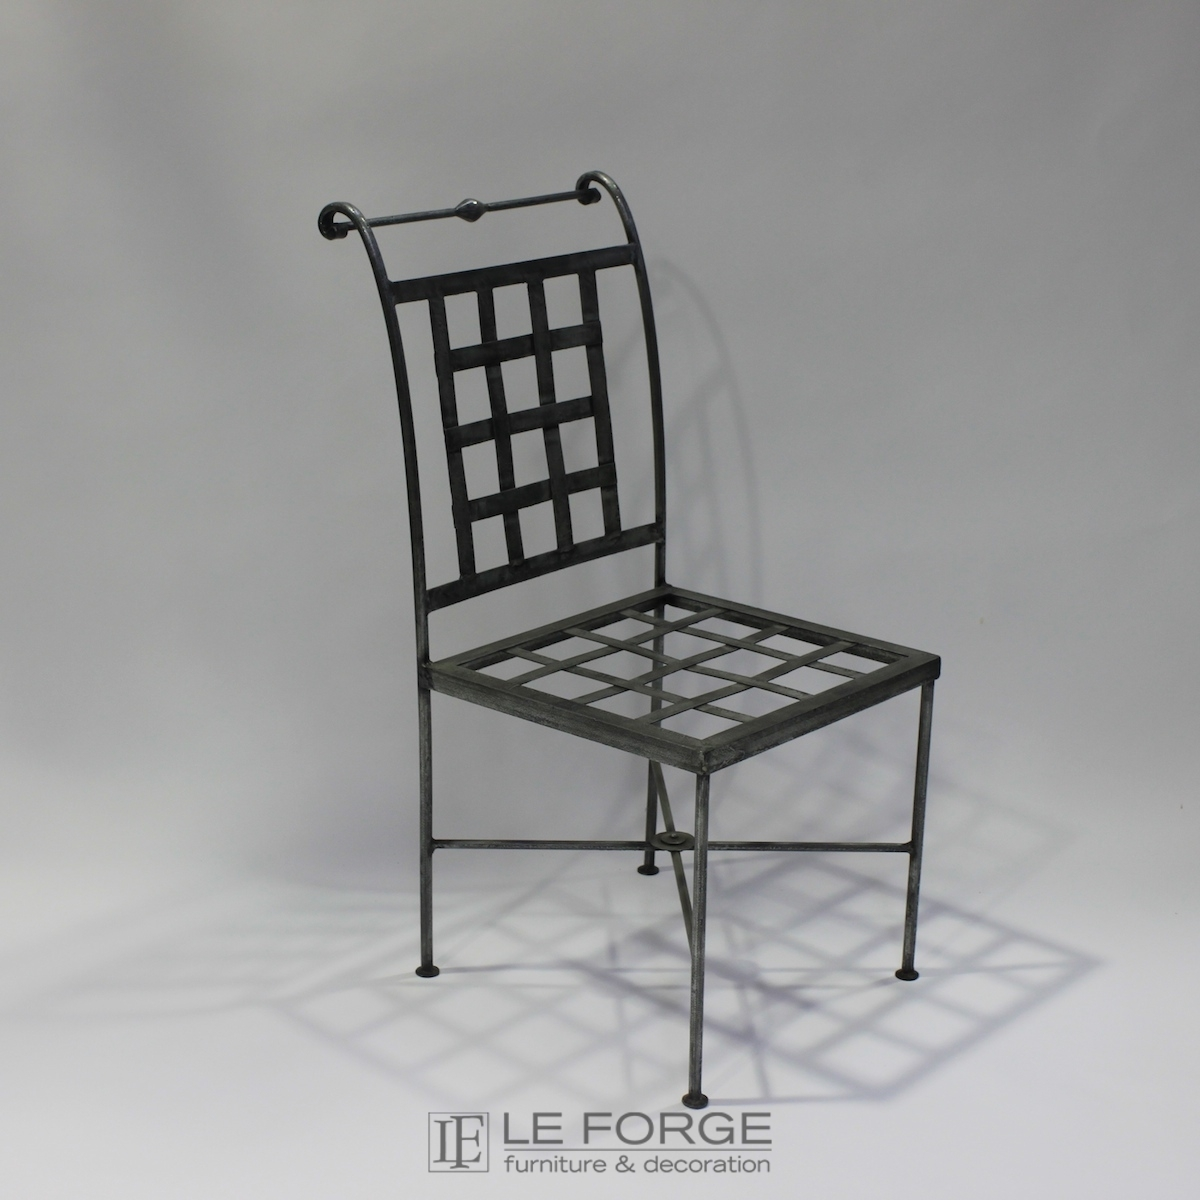 Wrought Iron Outdoor Furniture Australia Chairs Genoa Chair Hand Forged Steel